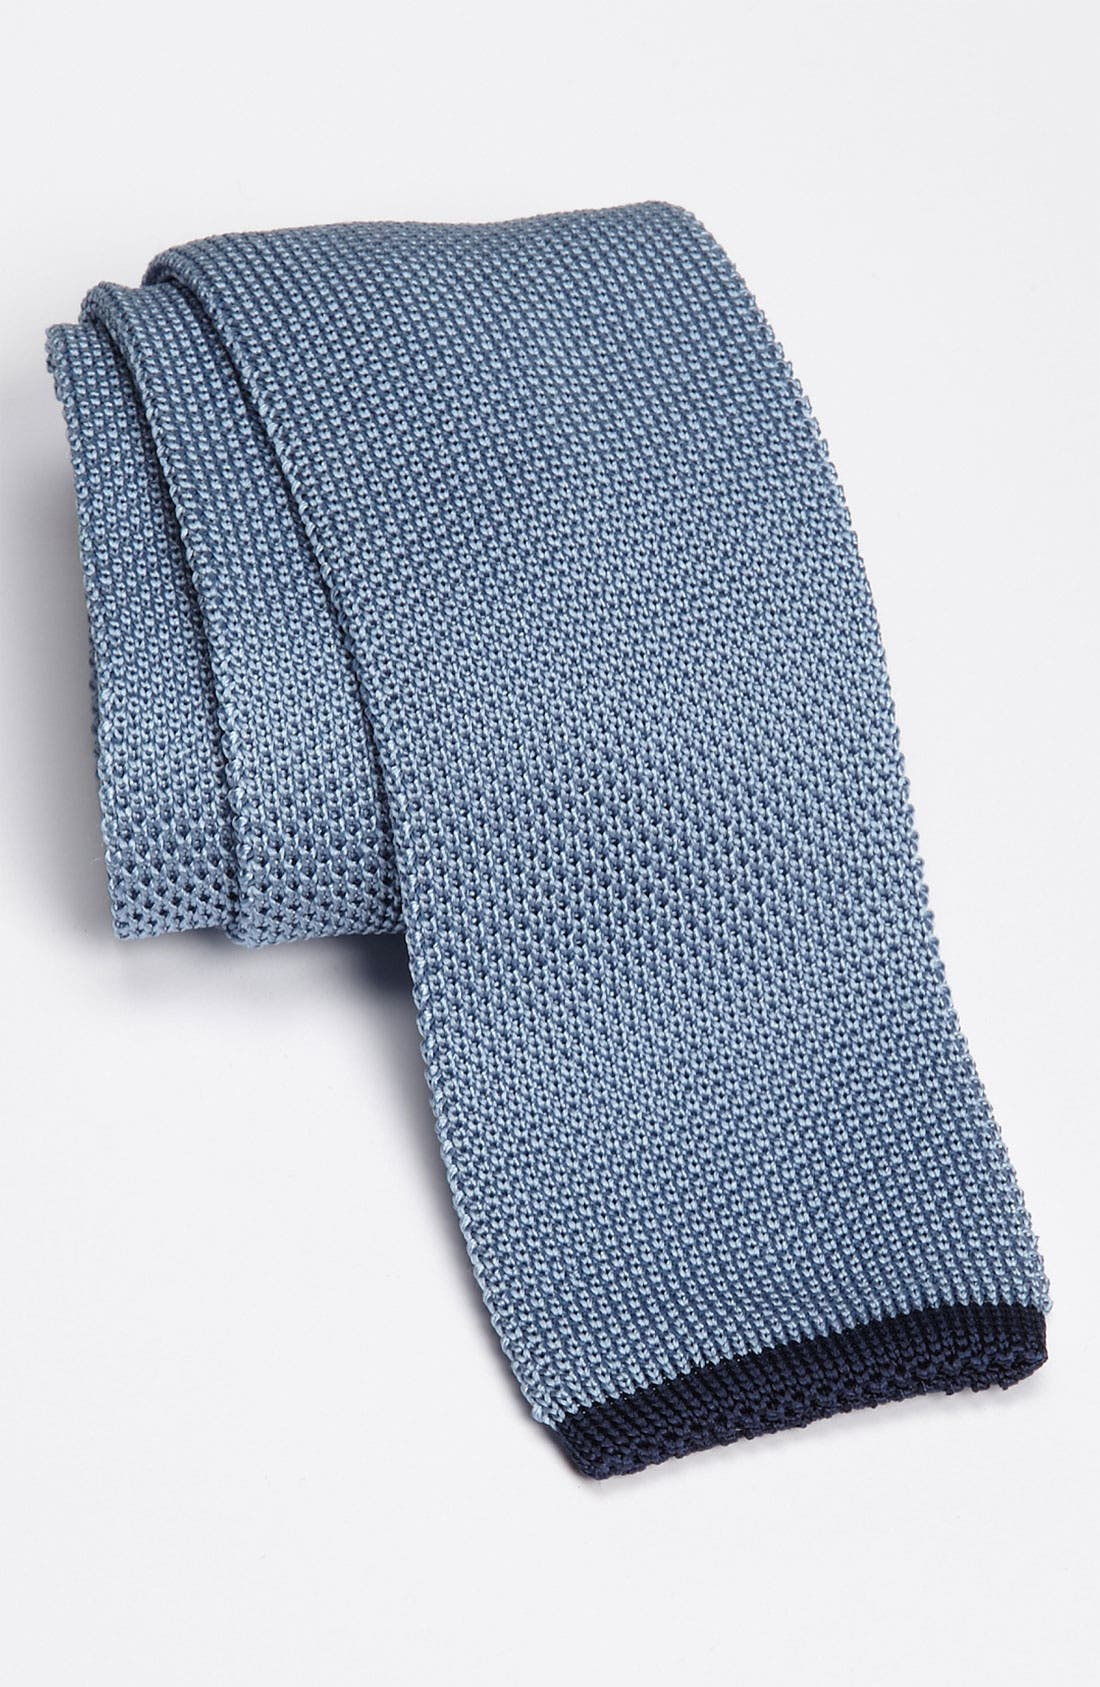 Alternate Image 1 Selected - Samuelsohn Solid Knit Tie